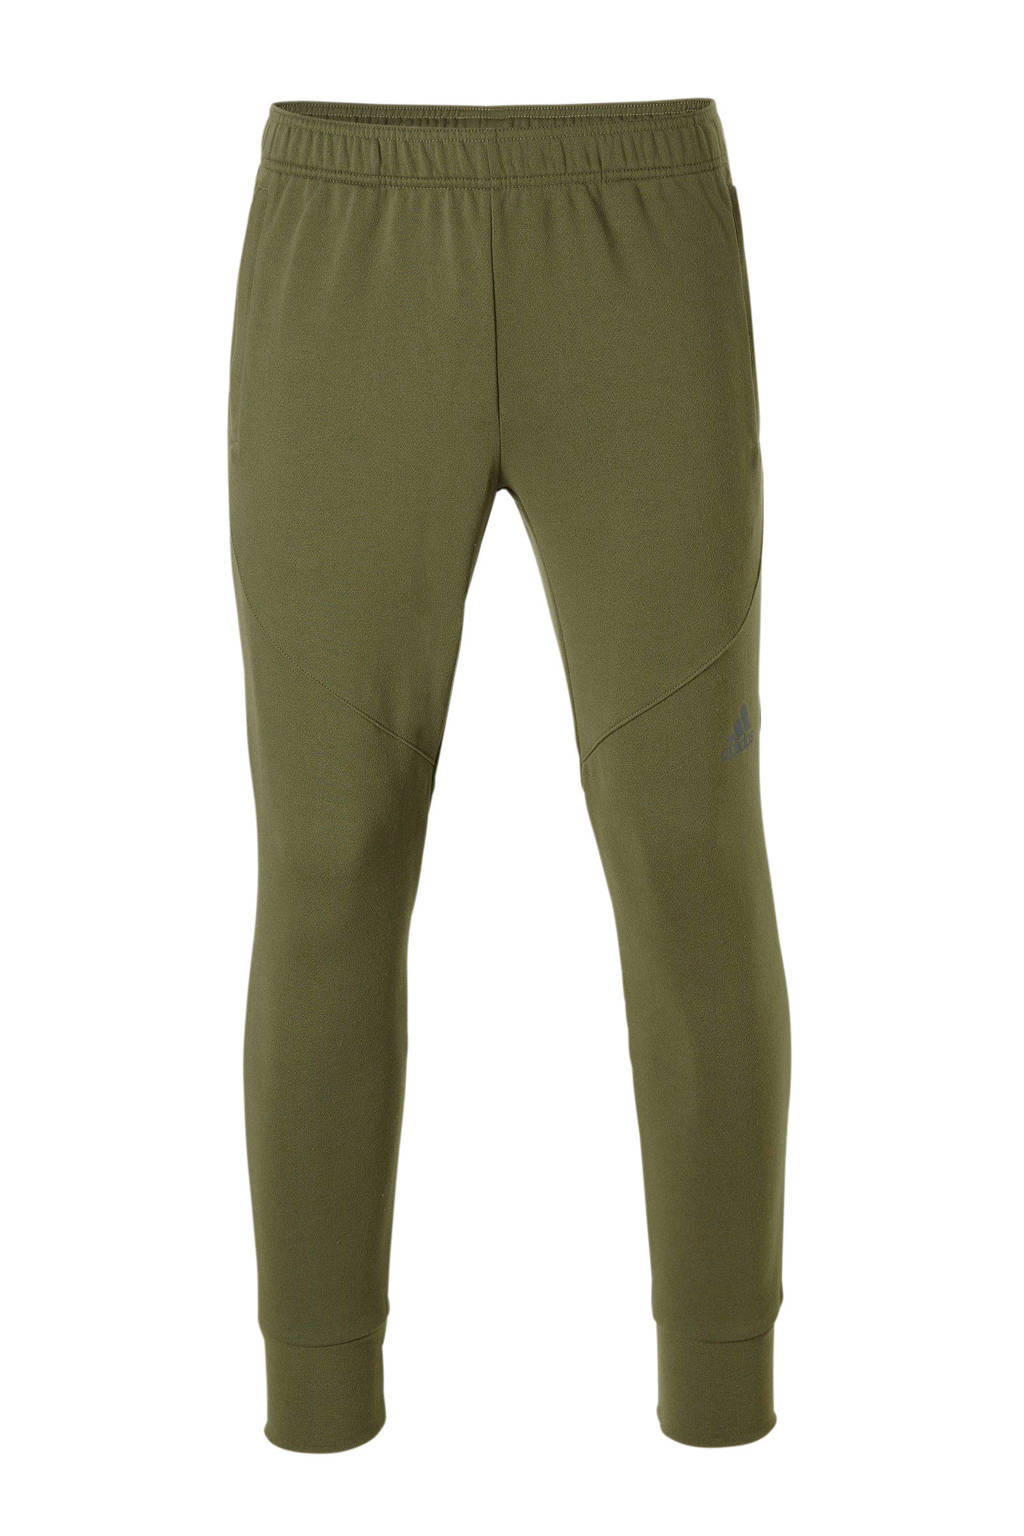 Joggingbroek Groen.Adidas Performance Joggingbroek Groen Wehkamp